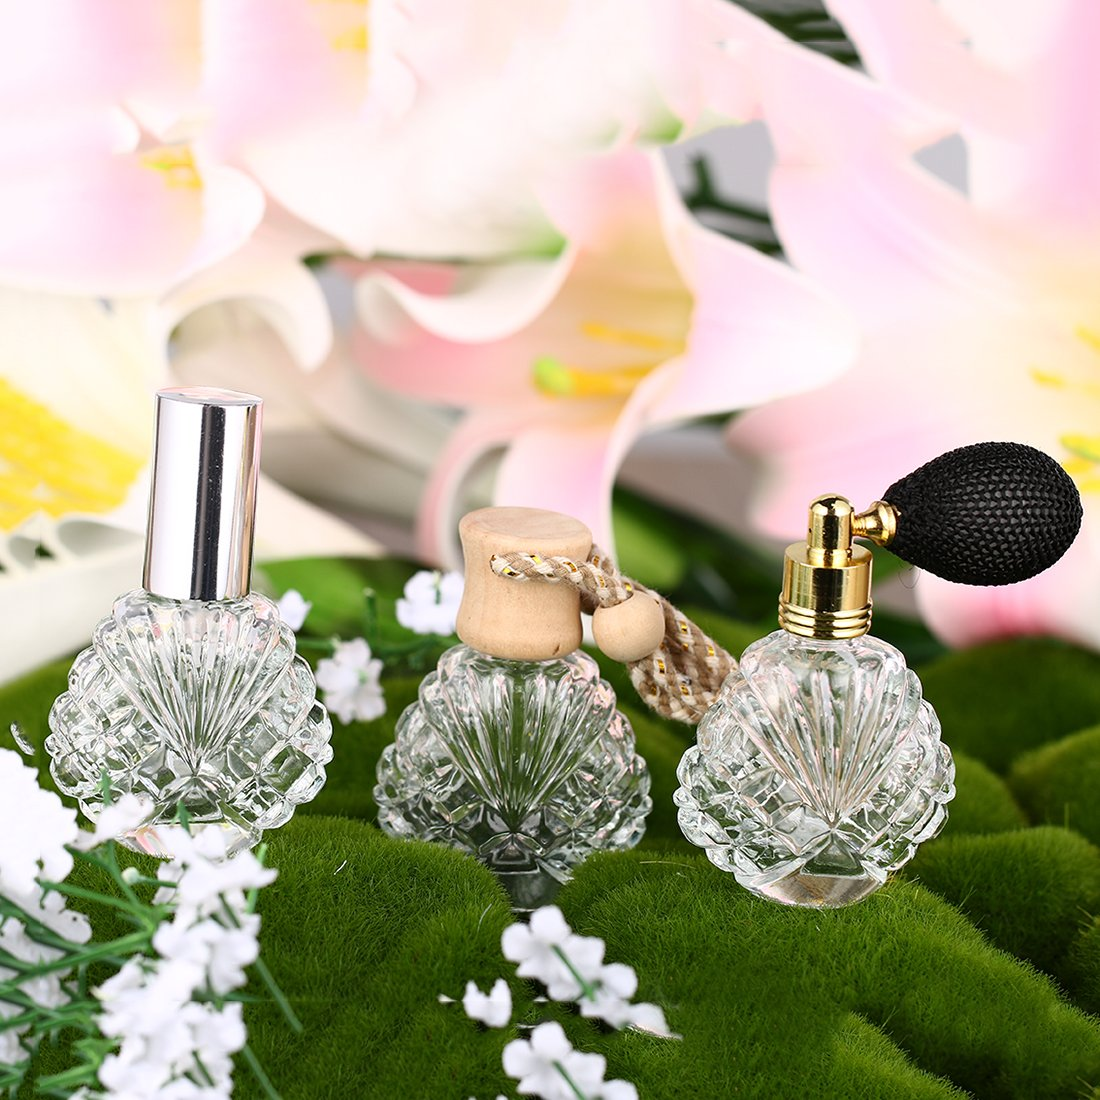 H&D Vintage Peacock Shape Glass Empty Perfume Bottles Spray Wedding Gifts Decor Set 3 2